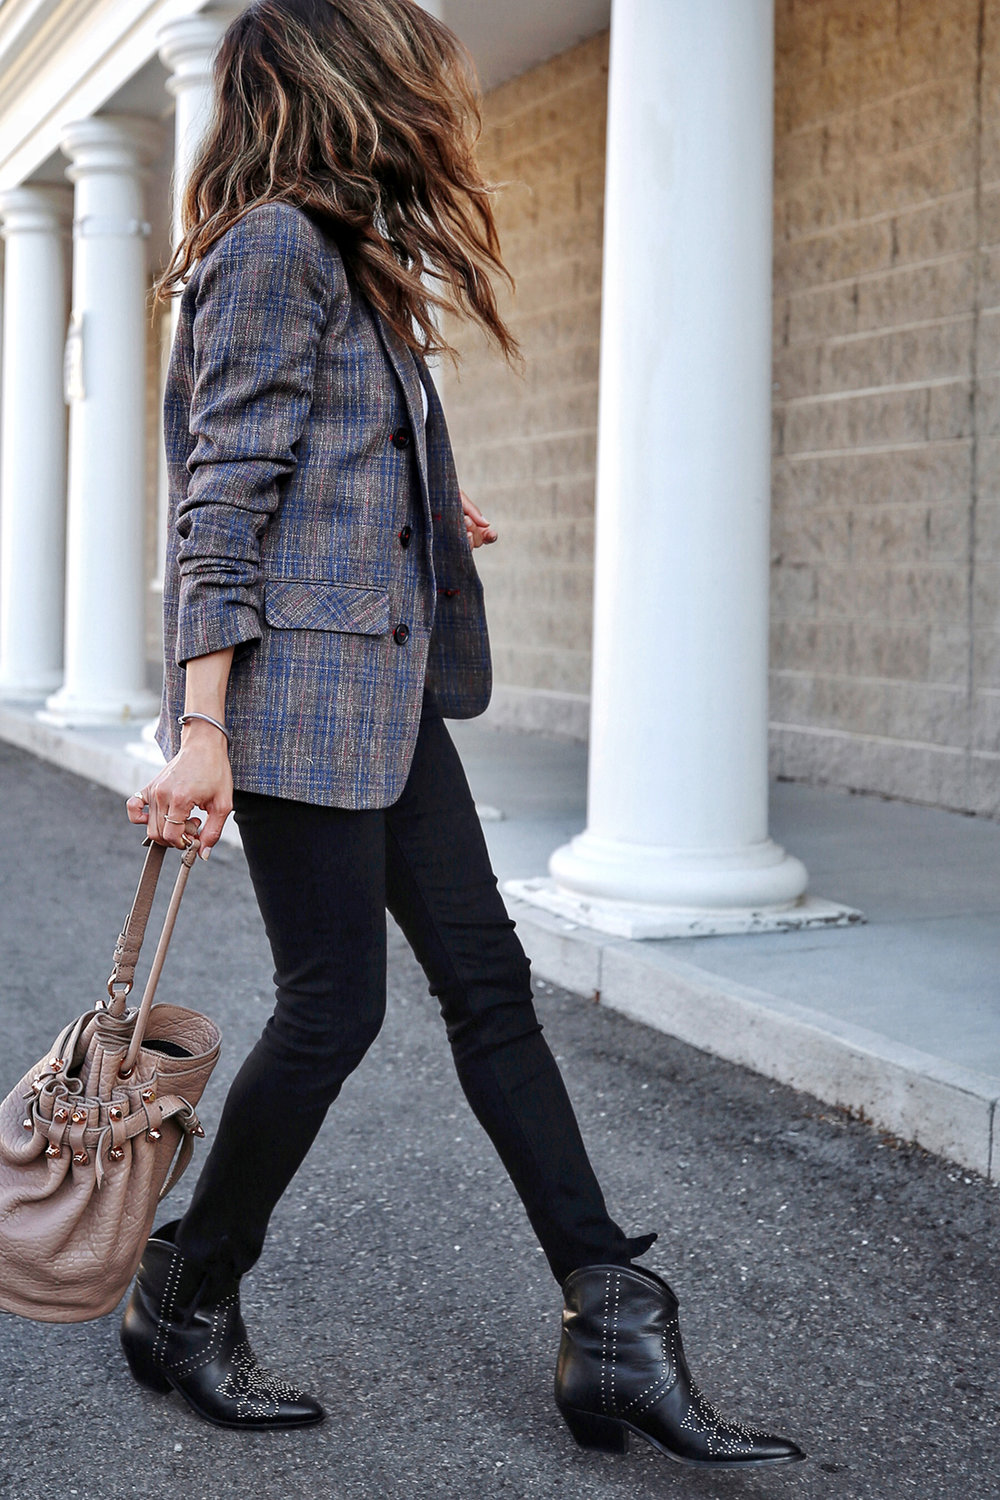 Veronica Beard plaid blazer, Rag & Bone black skinny jeans, Isabel Marant black studded Dollan cowboy boots, Alexander Wang tanned Diego bag with rosegold hardwaare, street style, woahstyle.com by nathalie martin  12.jpg